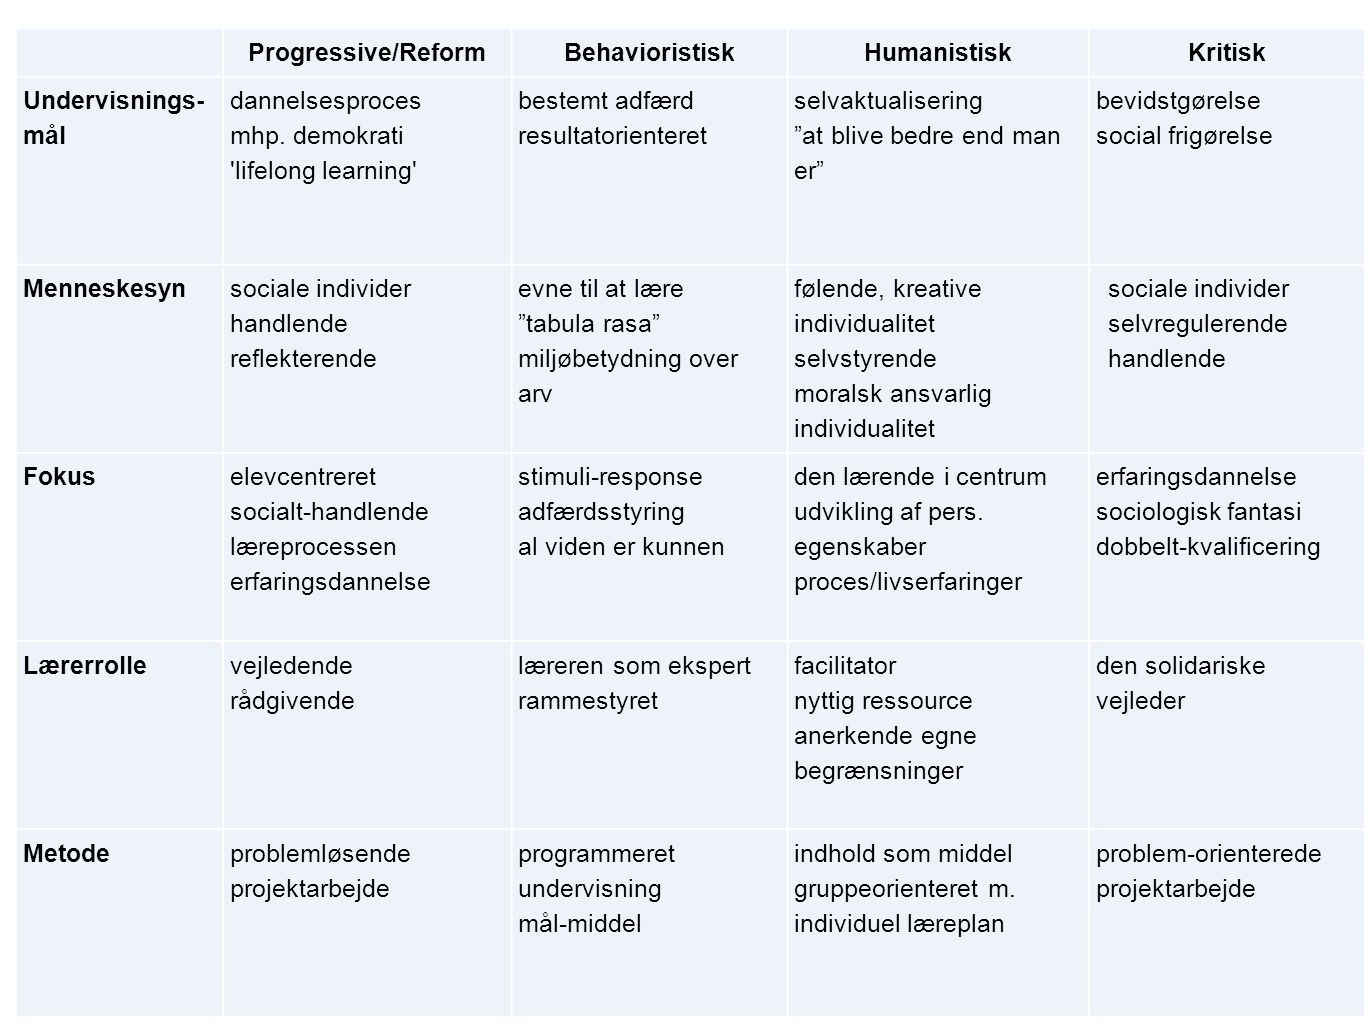 Progressive/Reform. Behavioristisk. Humanistisk. Kritisk. Undervisnings-mål. dannelsesproces mhp. demokrati.